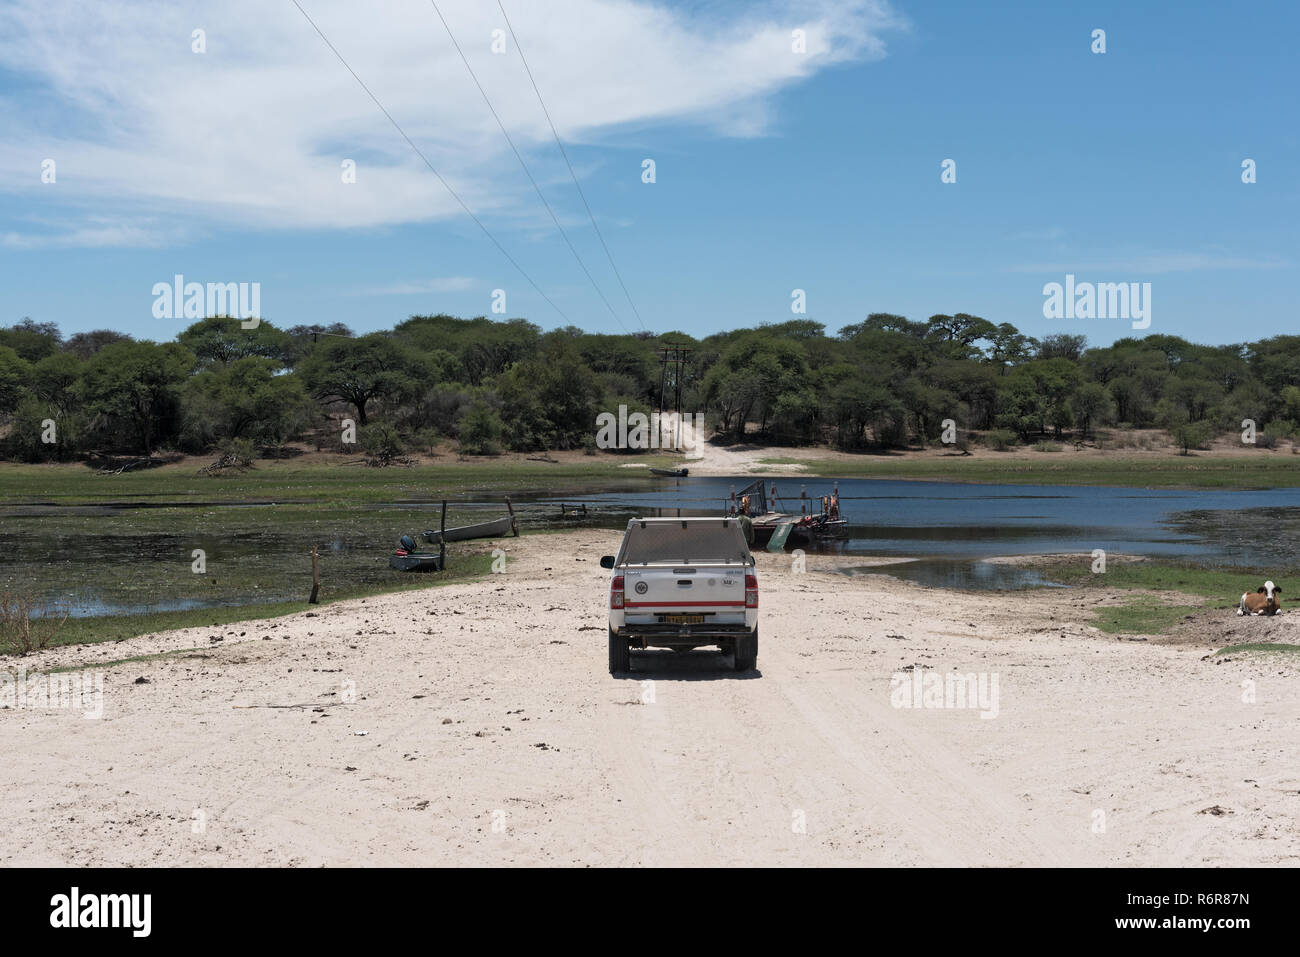 crossing the boteti river by car and passenger ferry in makgadikgadi pans national park, botswana - Stock Image